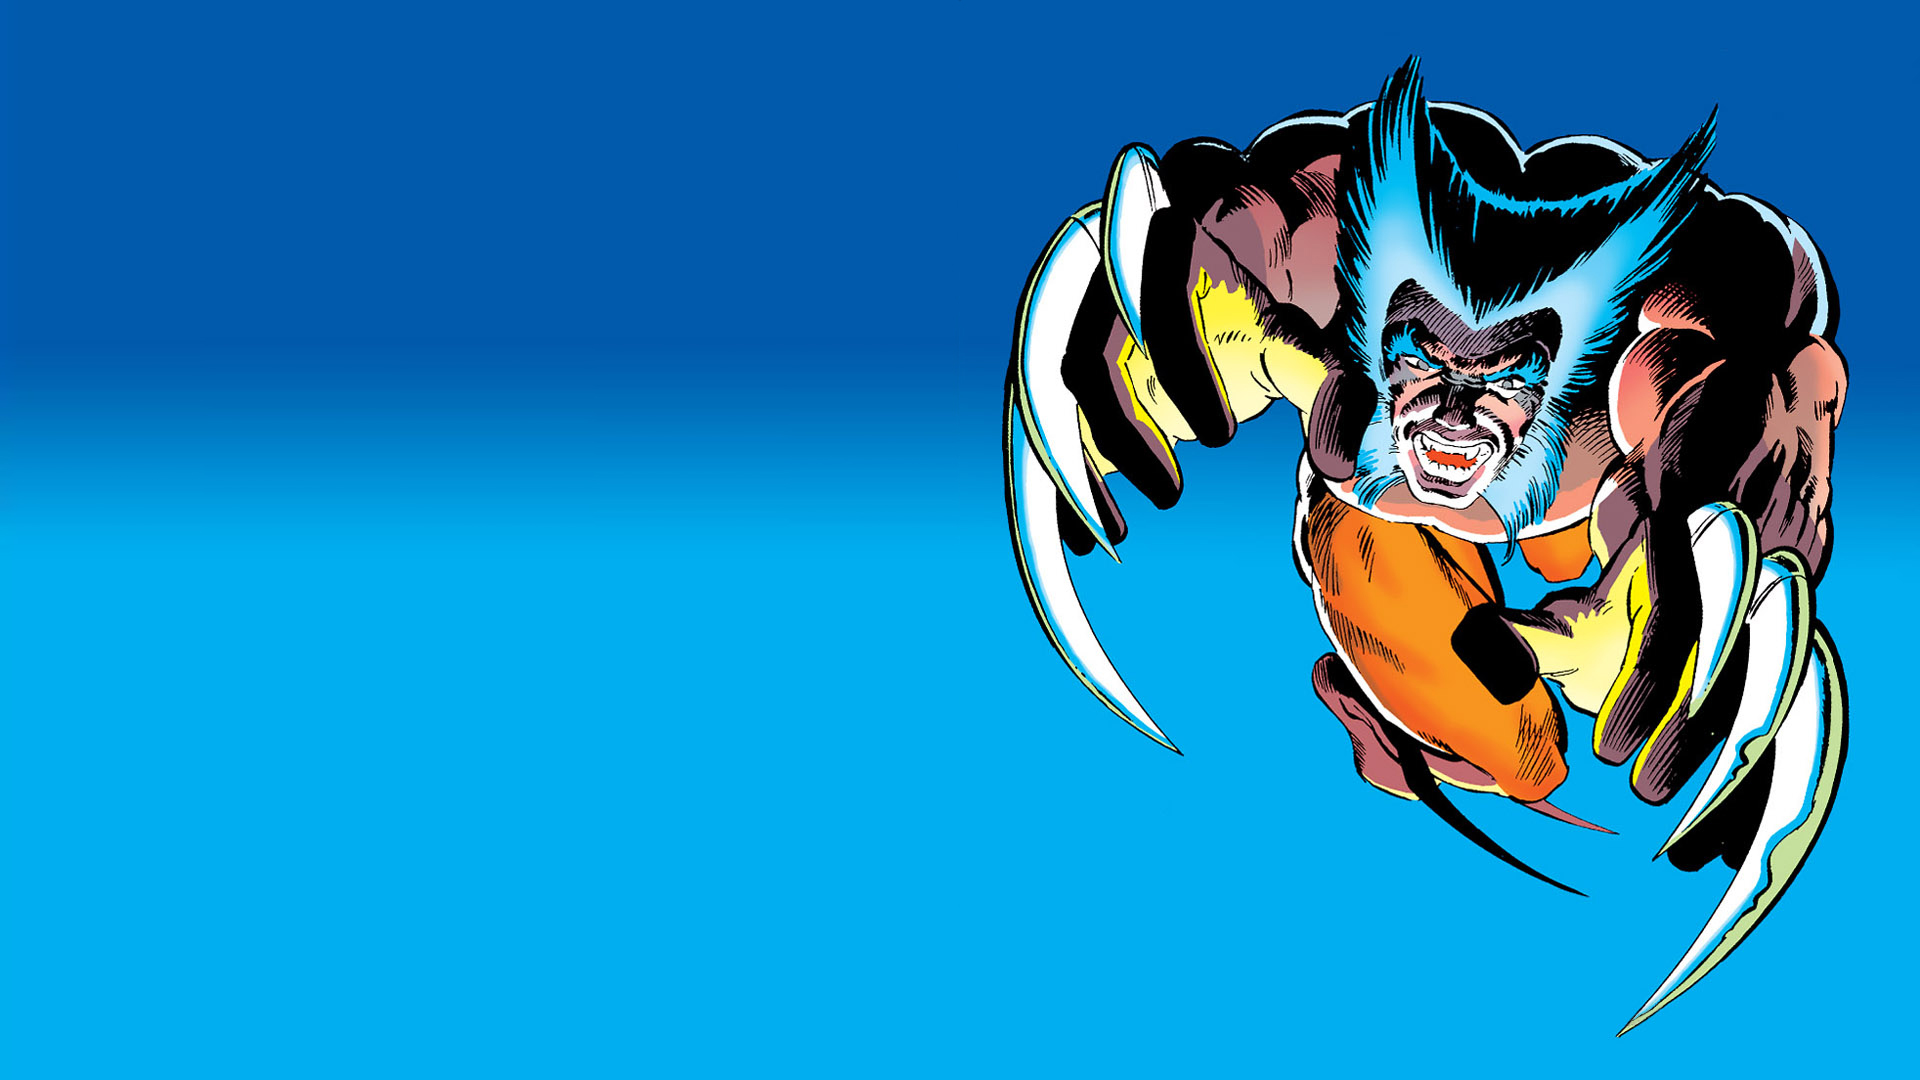 comics X-Men wolverine HD Wallpaper